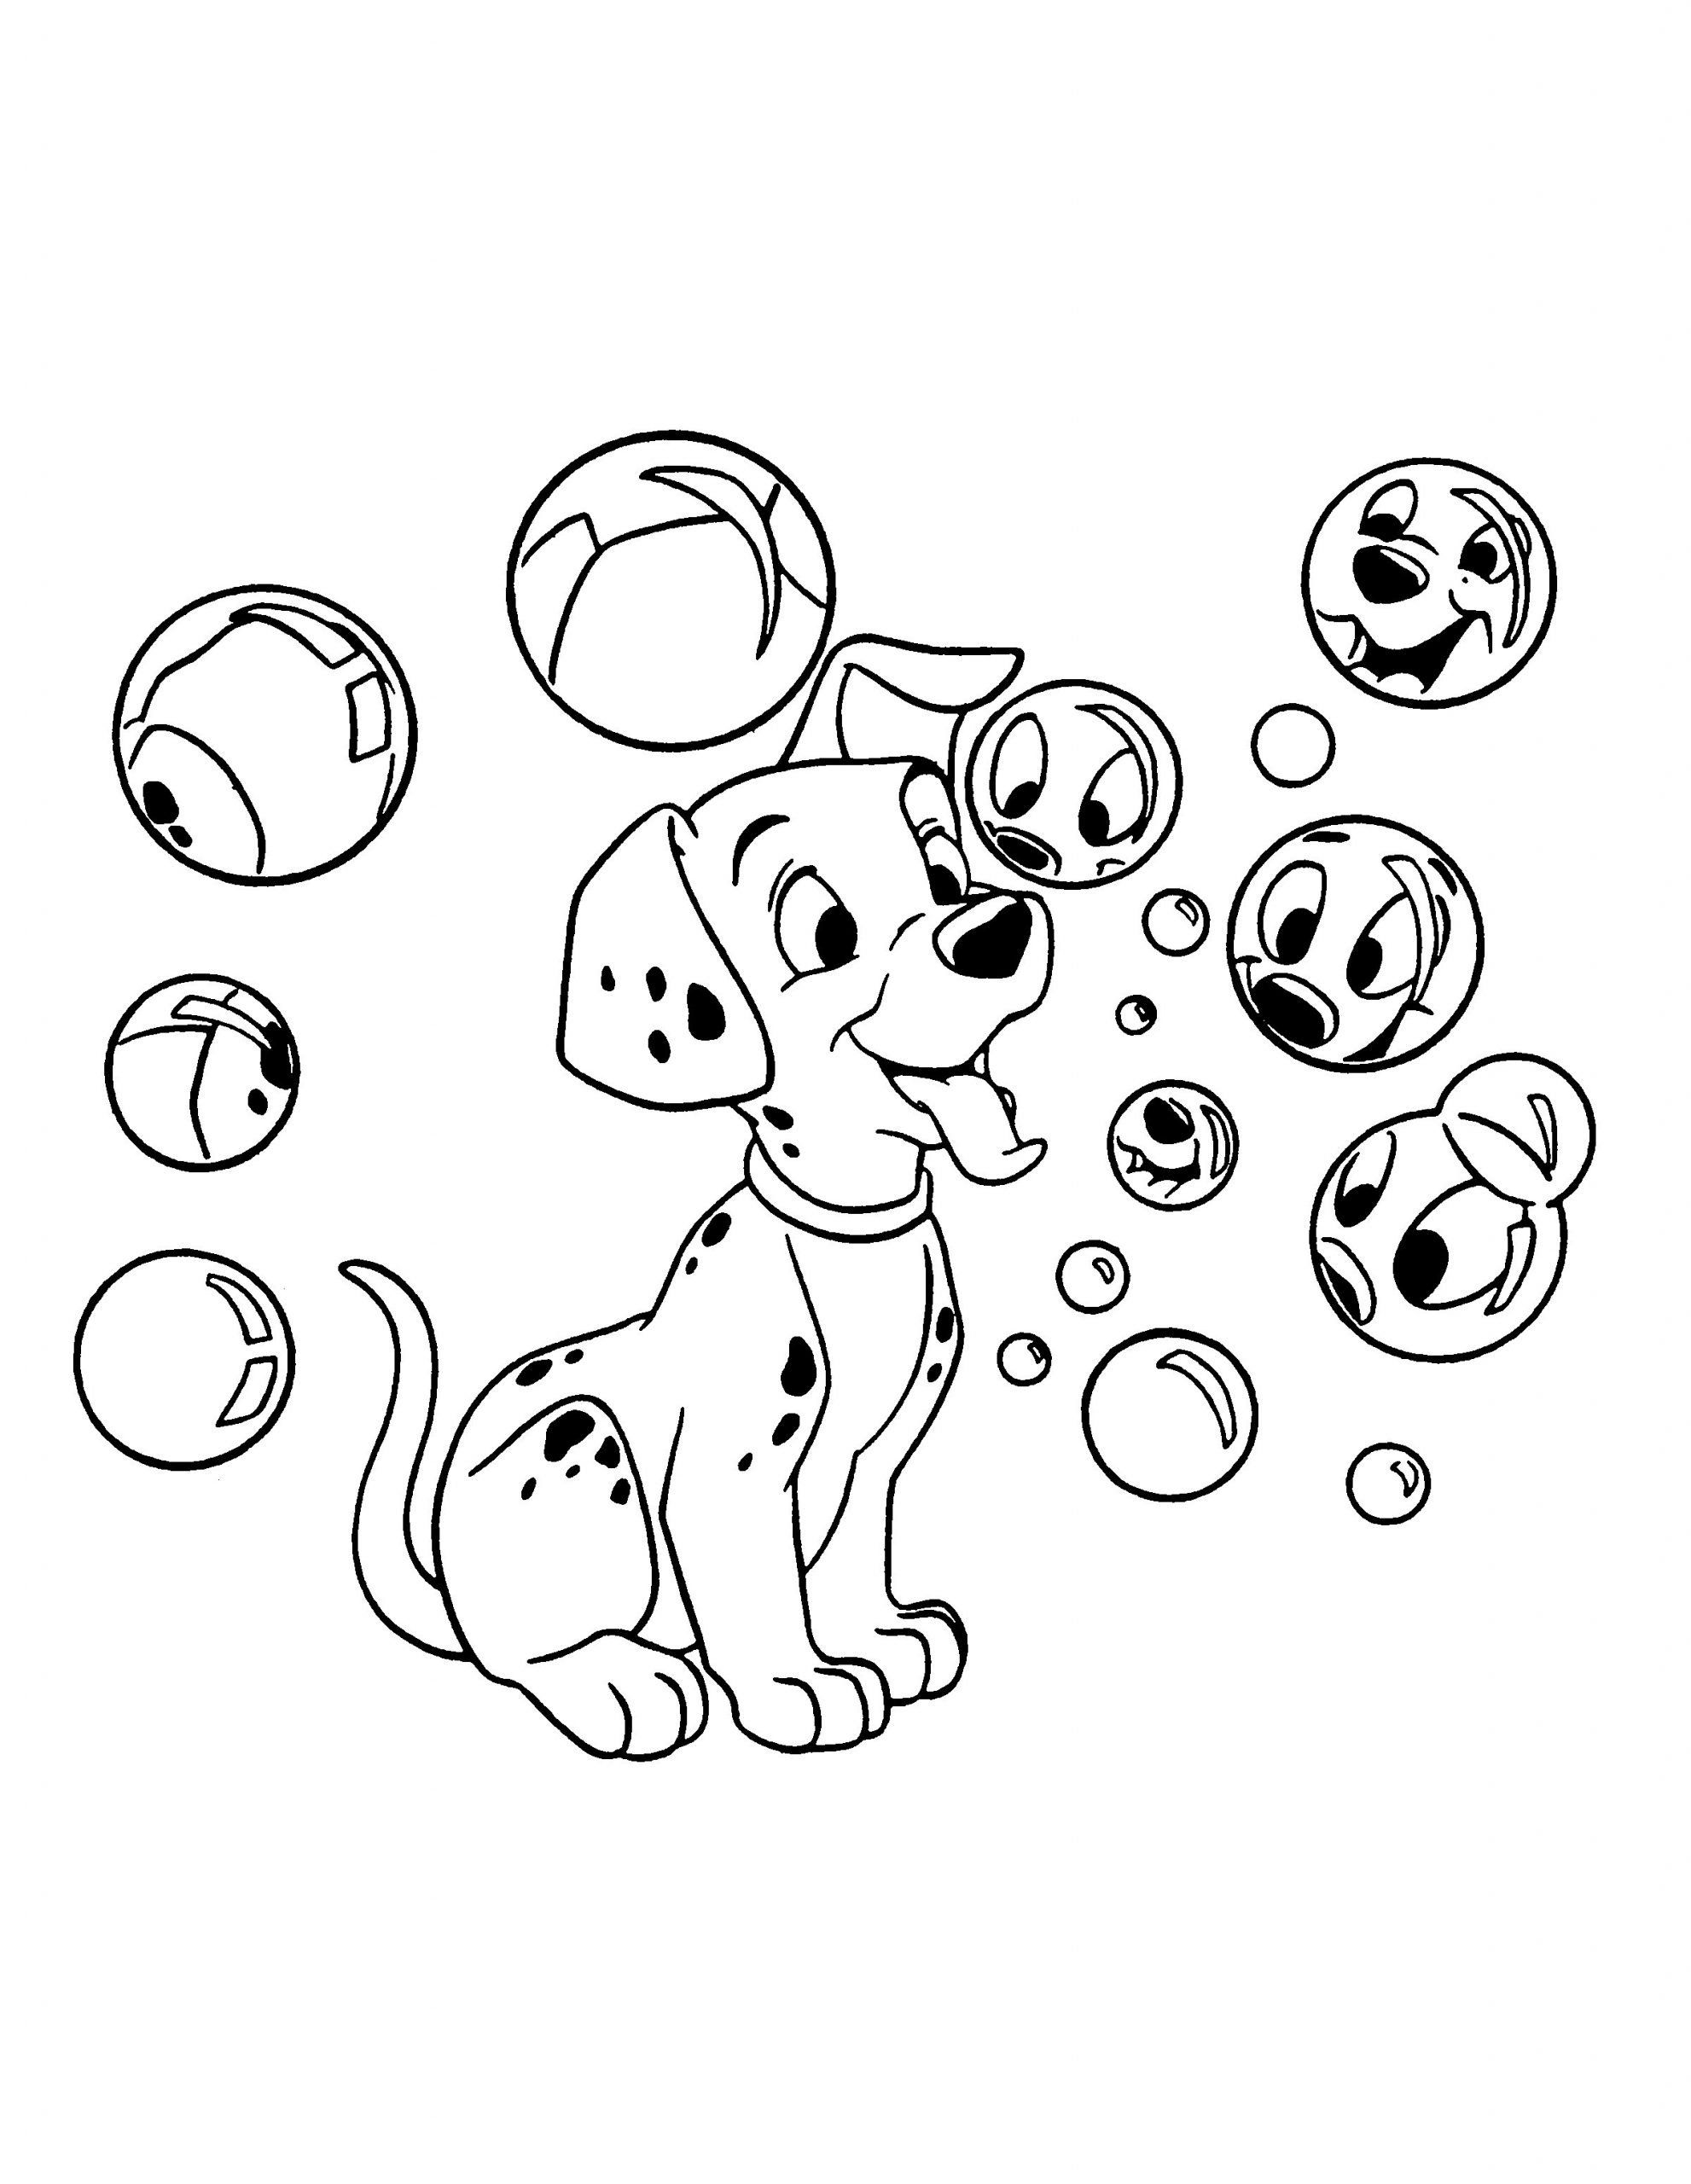 101 Dalmations Coloring Pages 101 Dalmations Coloring